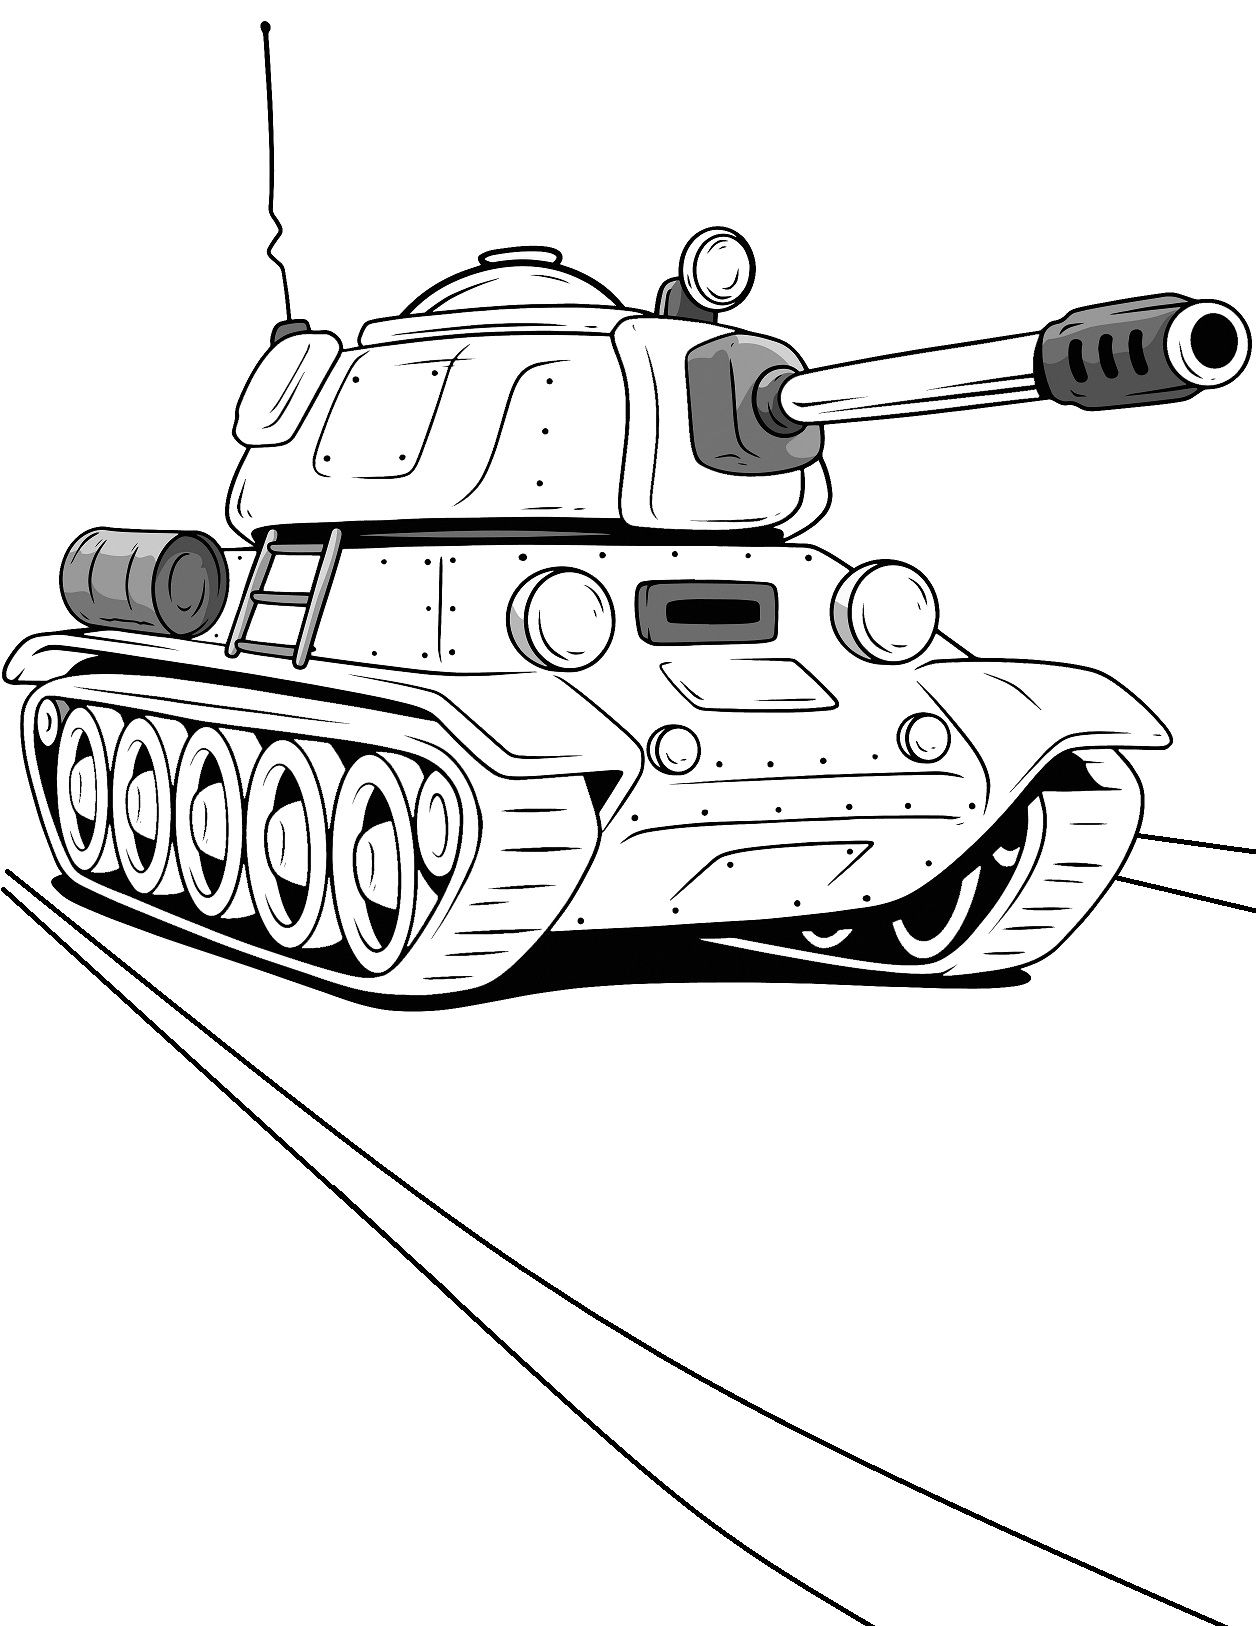 New Military Coloring Book With Tanks And Armored Vehicles